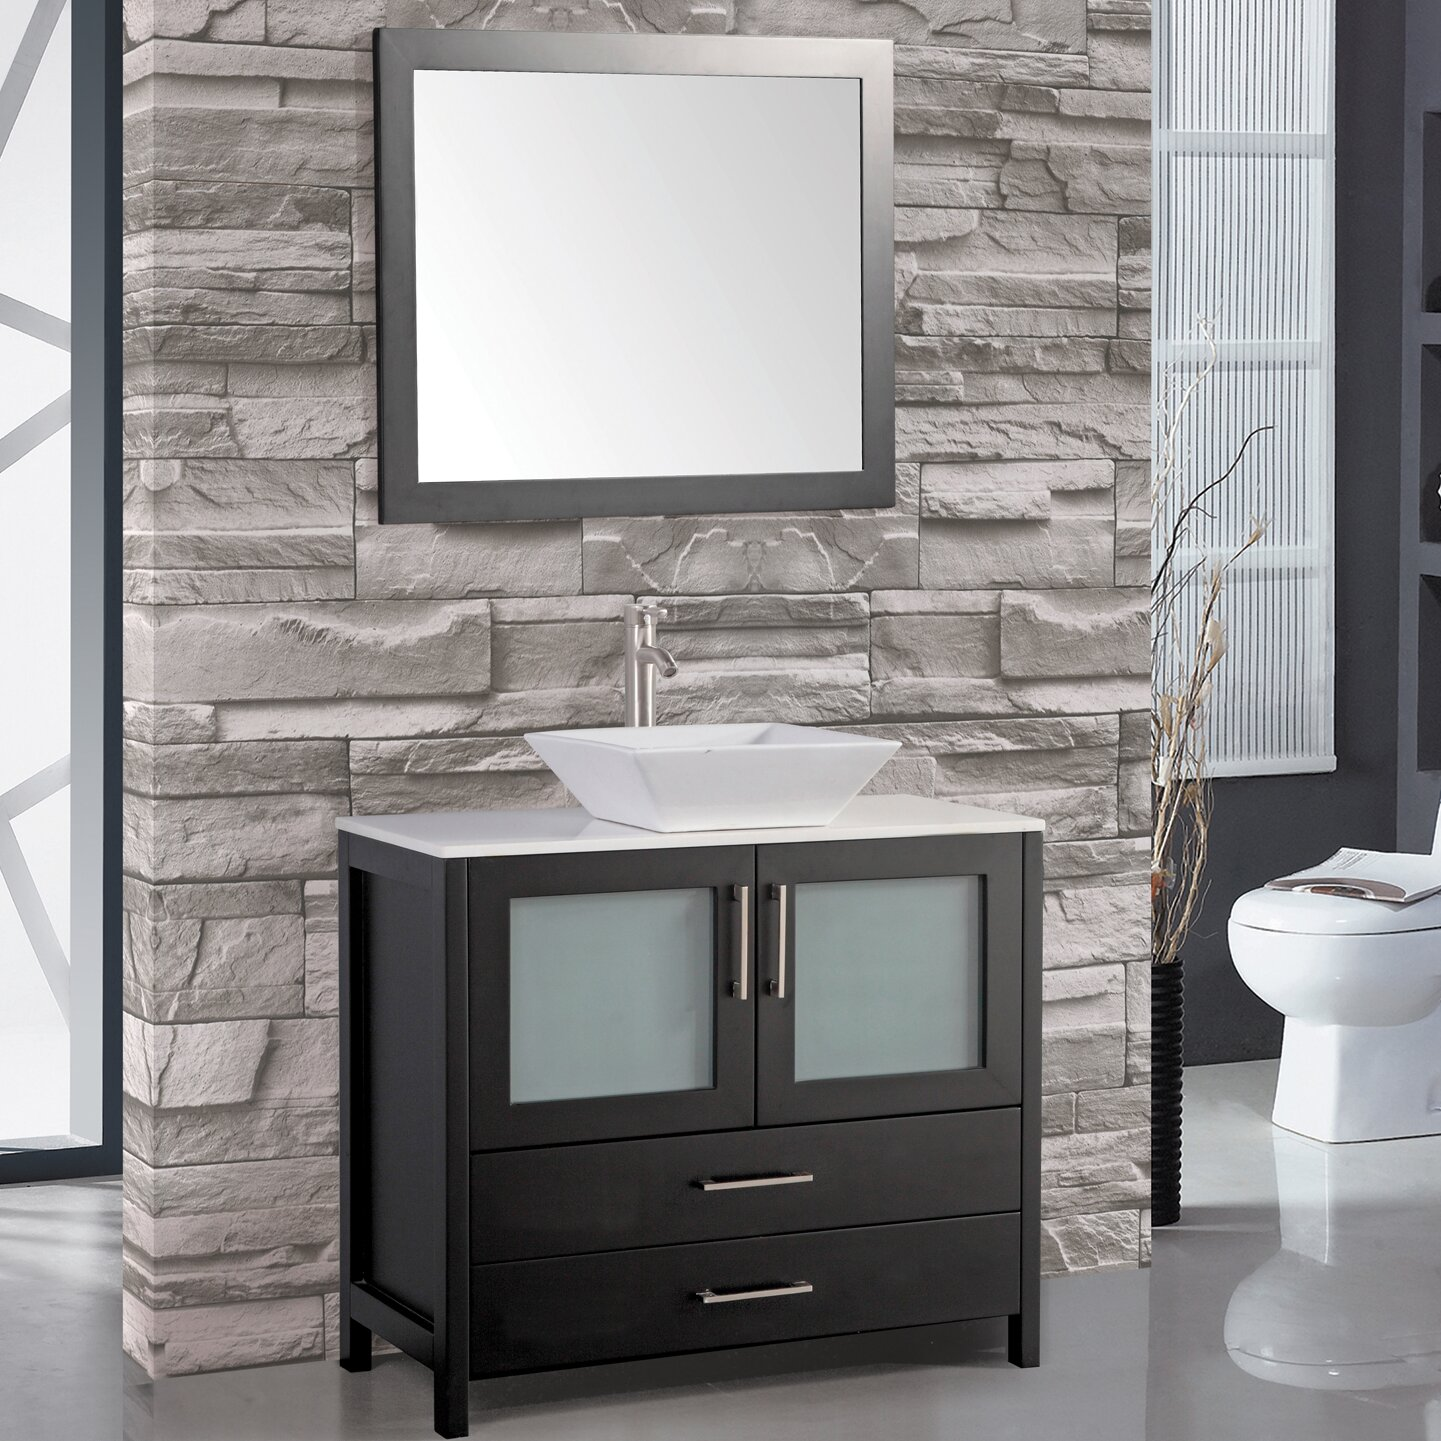 MTDVanities Jordan 48 Single Sink Bathroom Vanity Set With Mirror